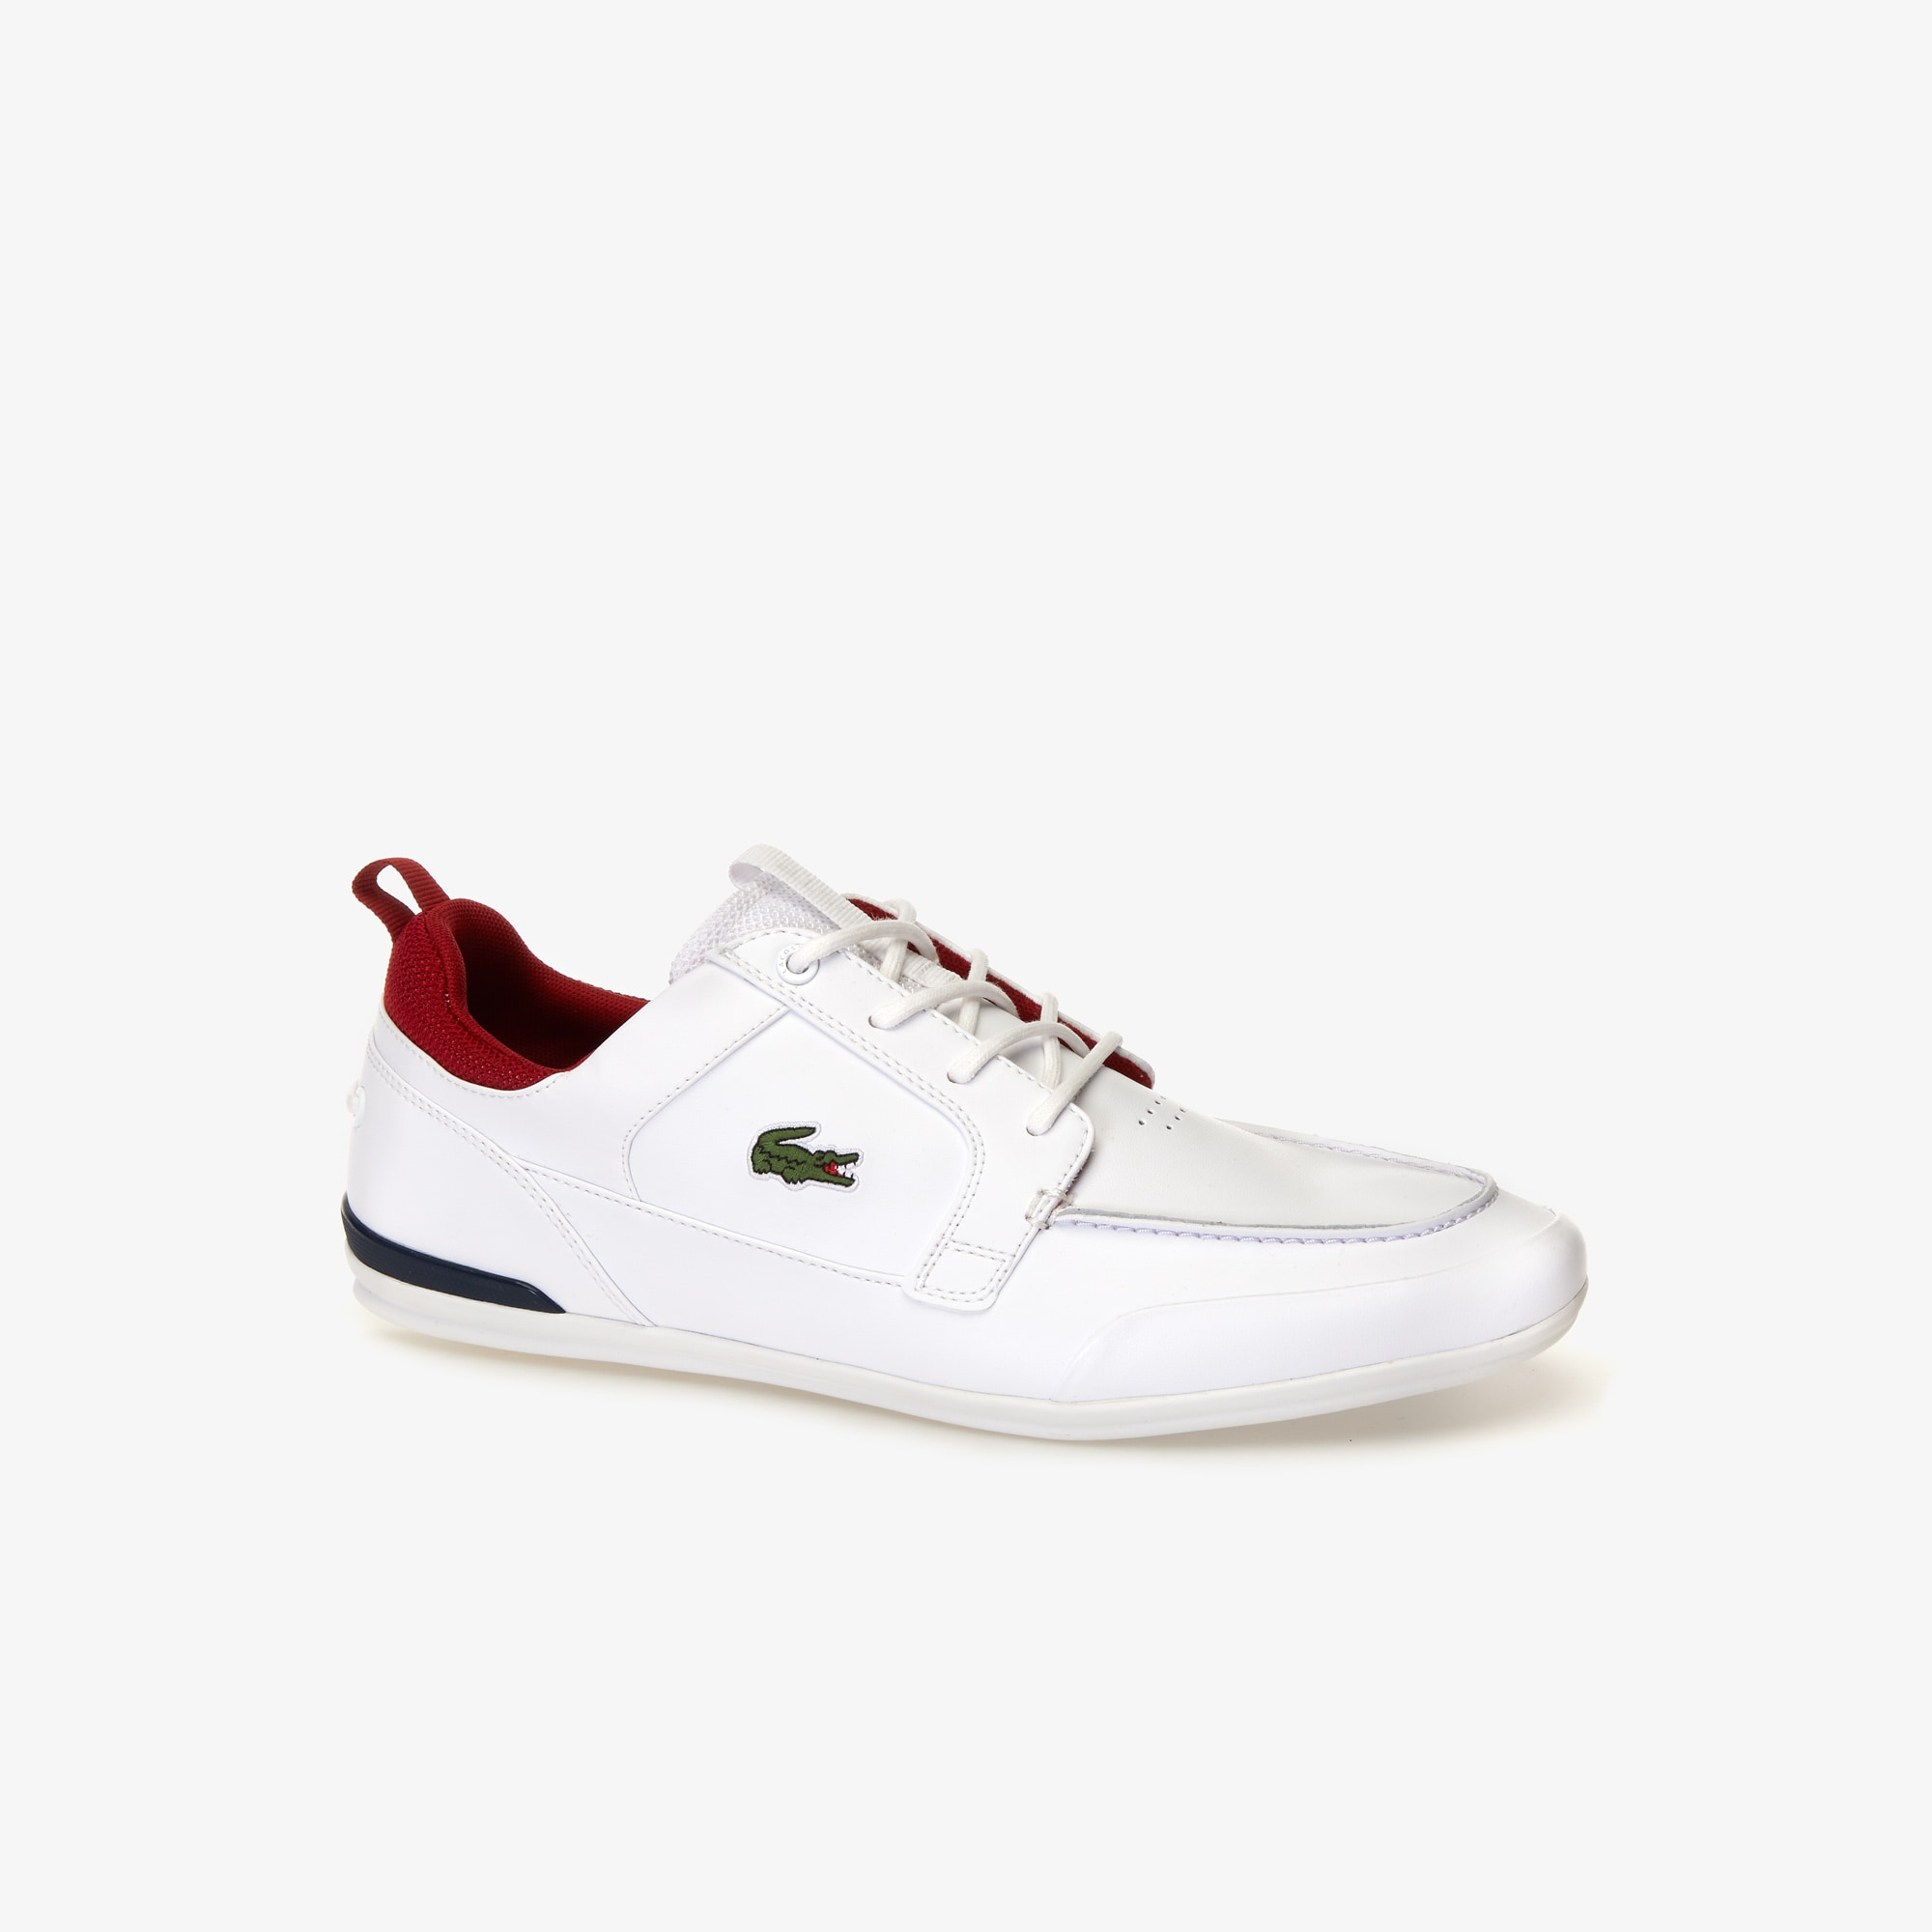 Men's Marina Textile and Leather Deck Shoes